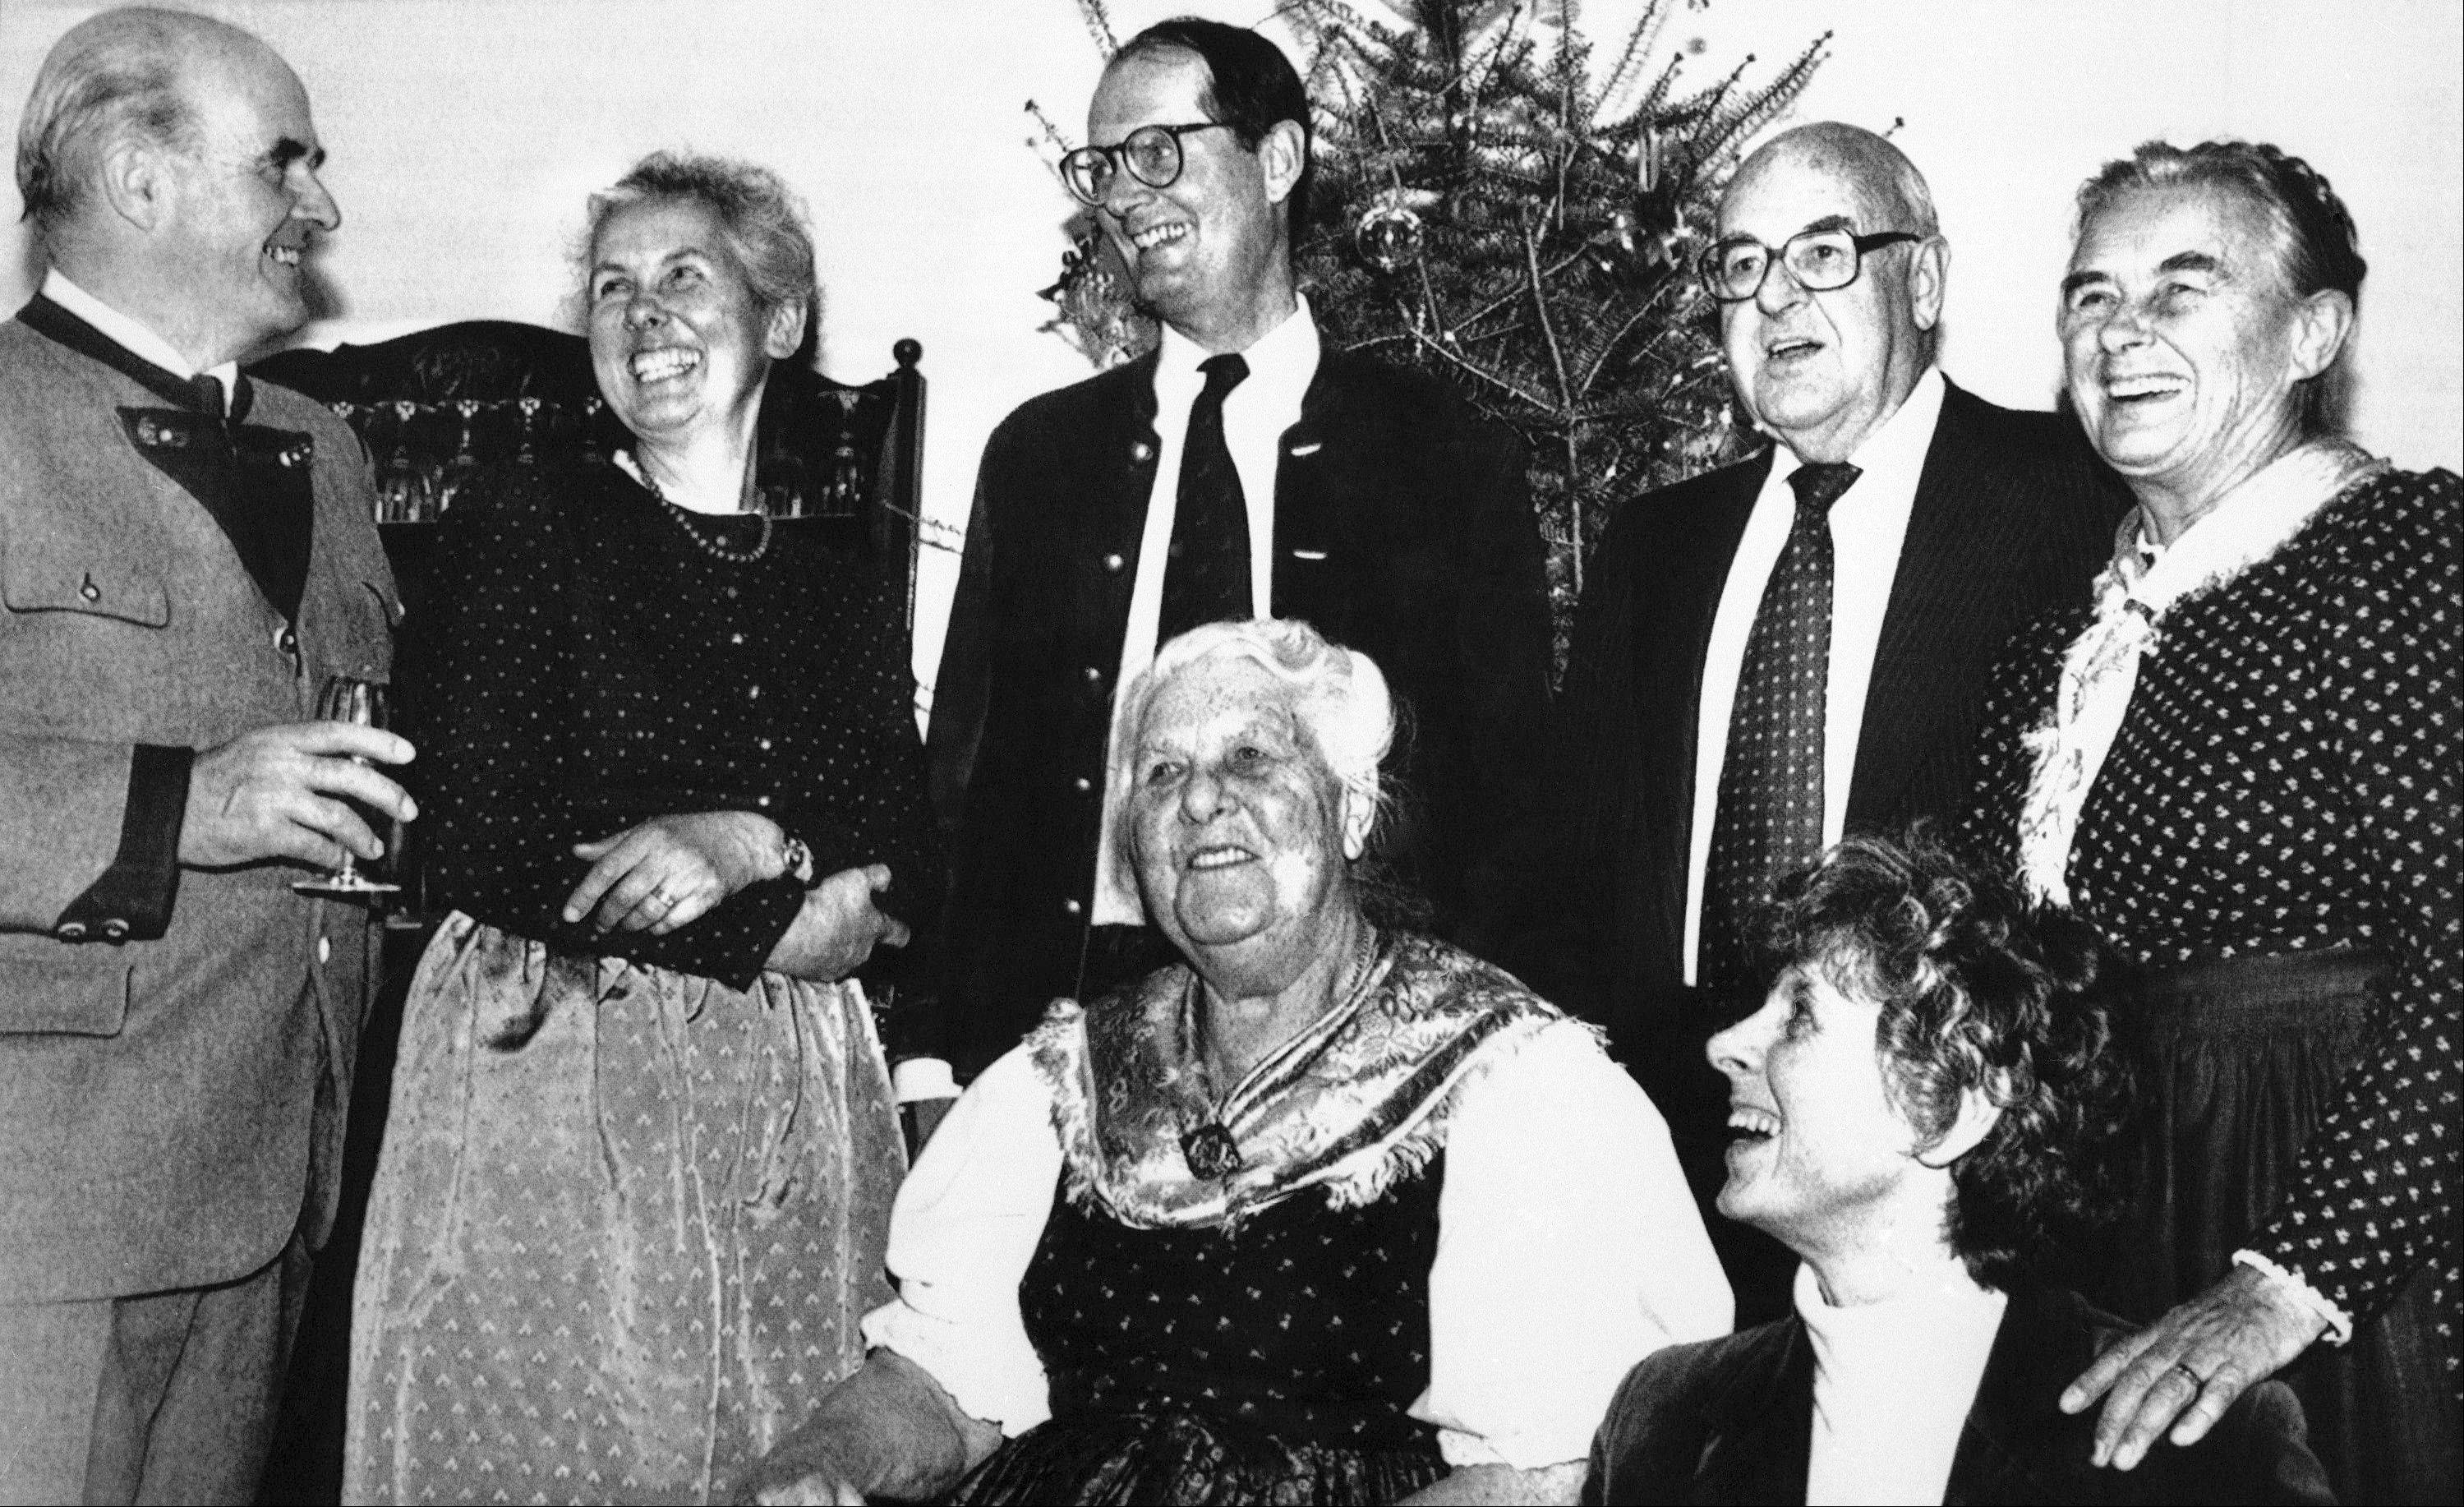 In 1984, the Von Trapp family gathered at the new Trapp Family Lodge in Stowe, Vt., to celebrate the birthday of Maria Von Trapp, center.